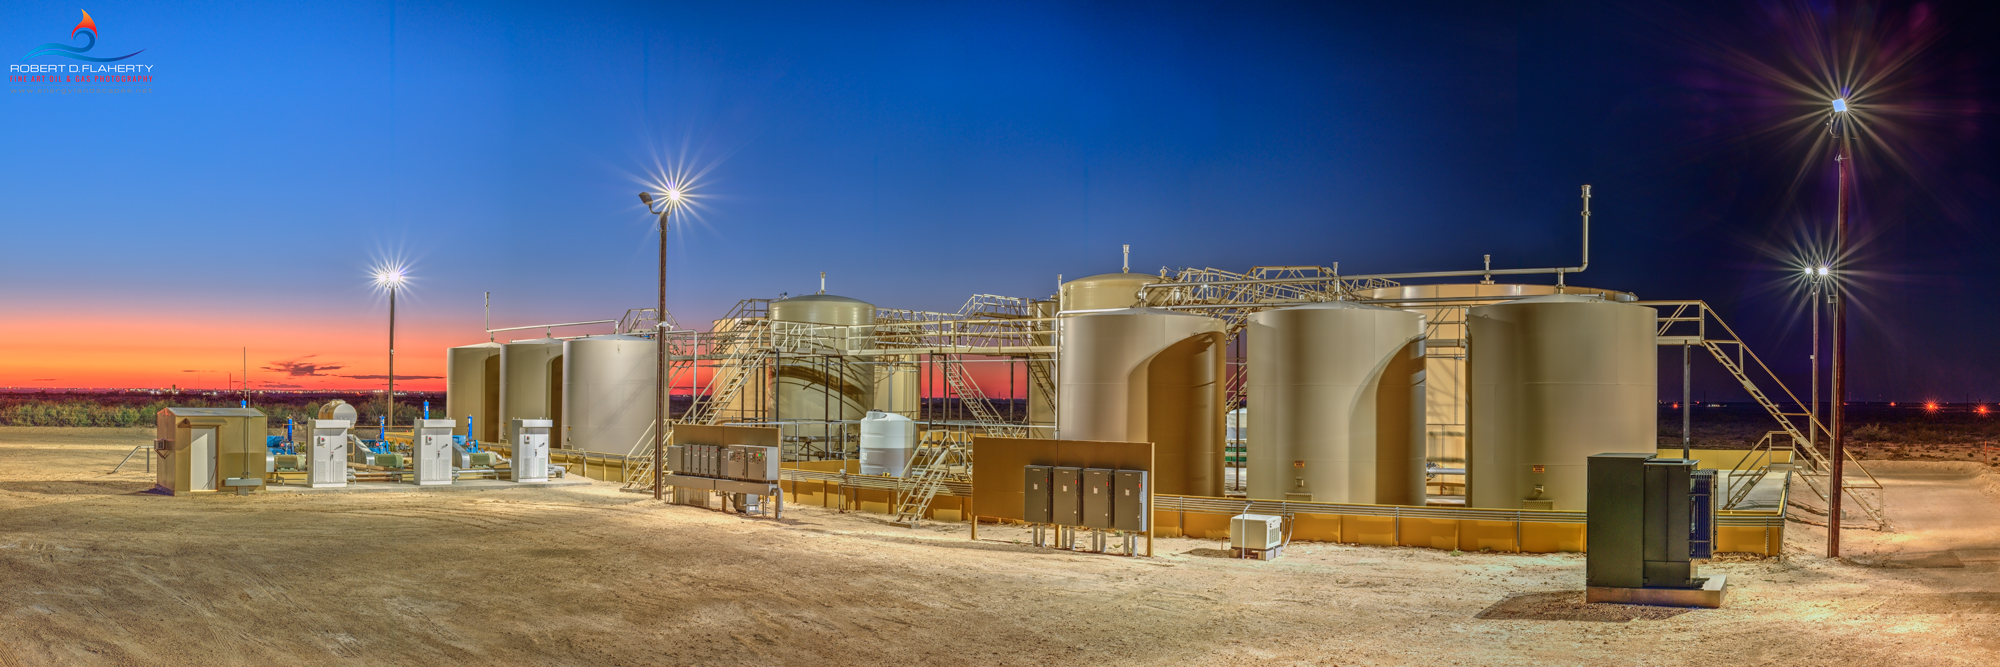 midstream, SWD, saltwater, saltwater disposal, high resolution, panorama, September, sunset, mural, Pecos Texas, Delaware Basin, Permian Basin, networked SWD, photo